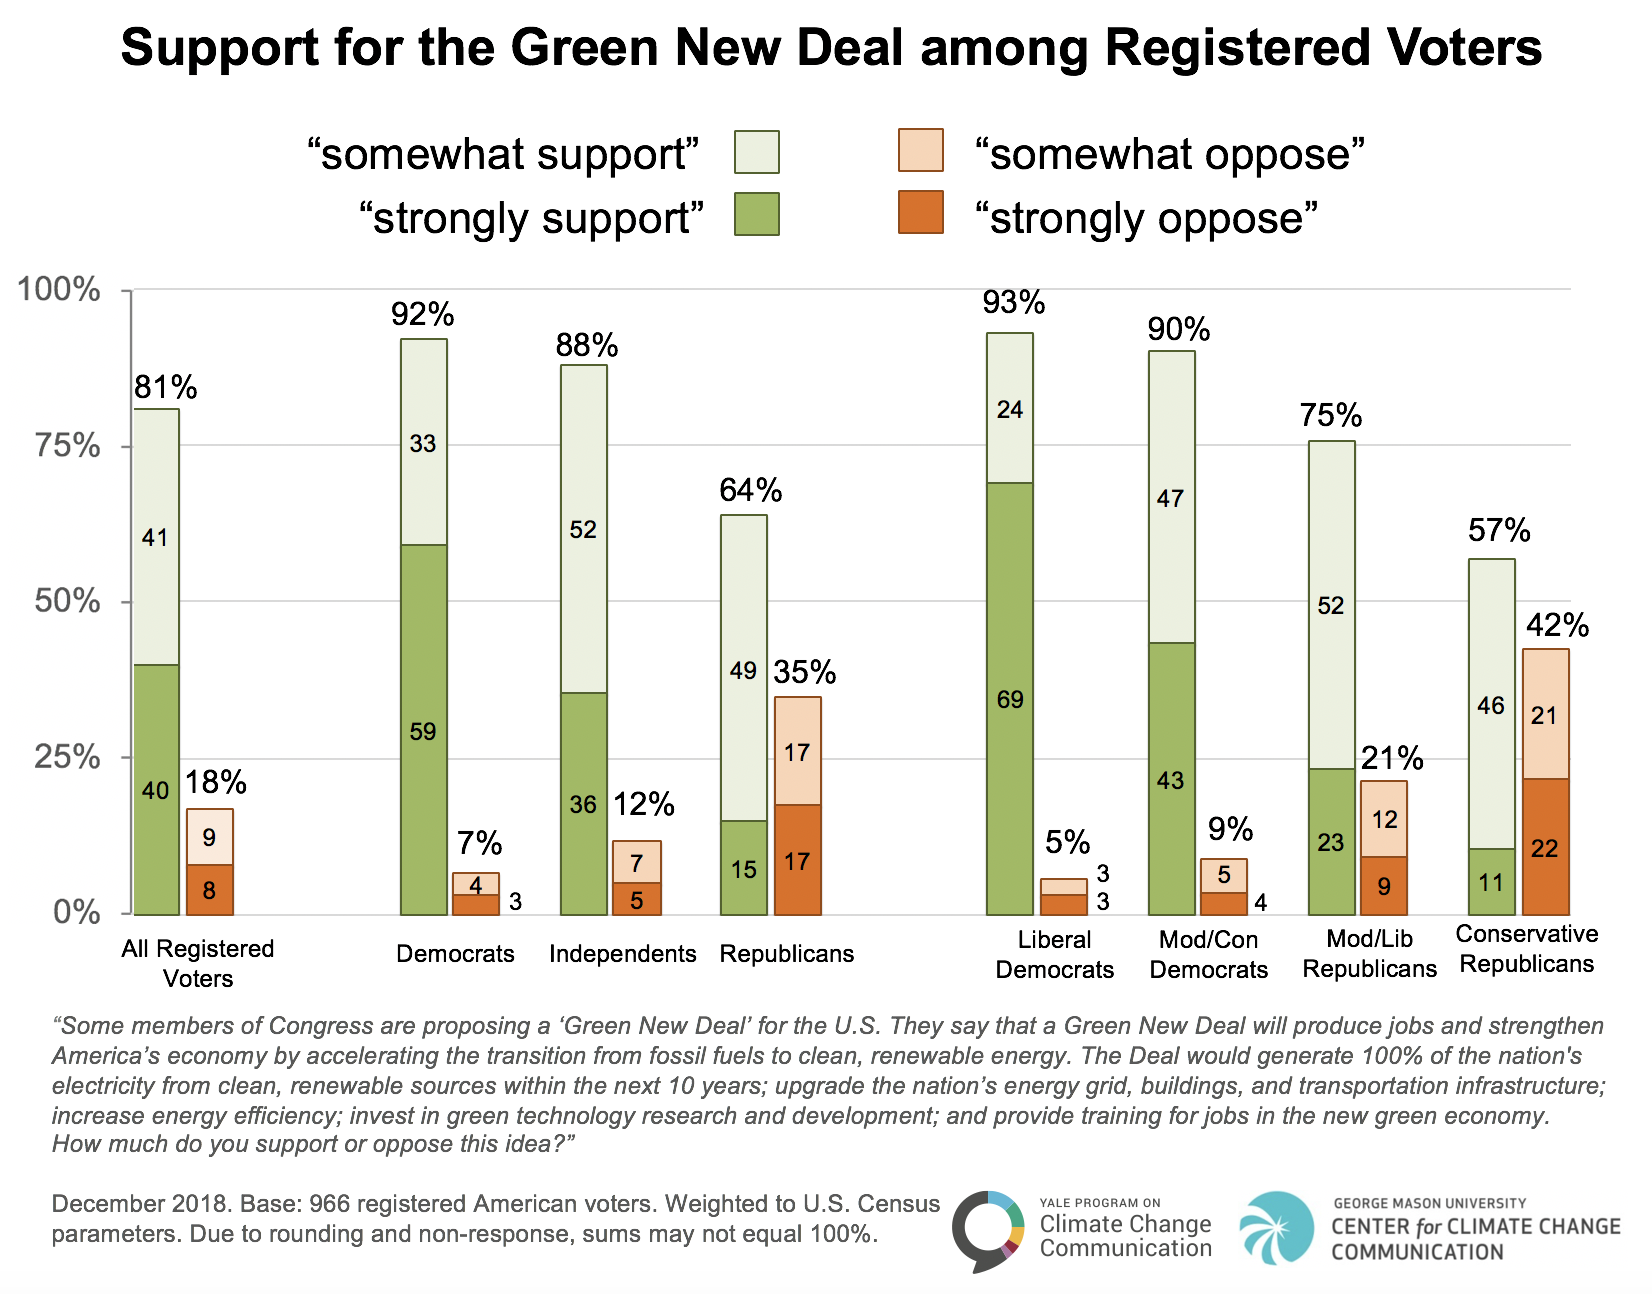 The Green New Deal has Strong Bipartisan Support - Yale Program on Climate Change Communication